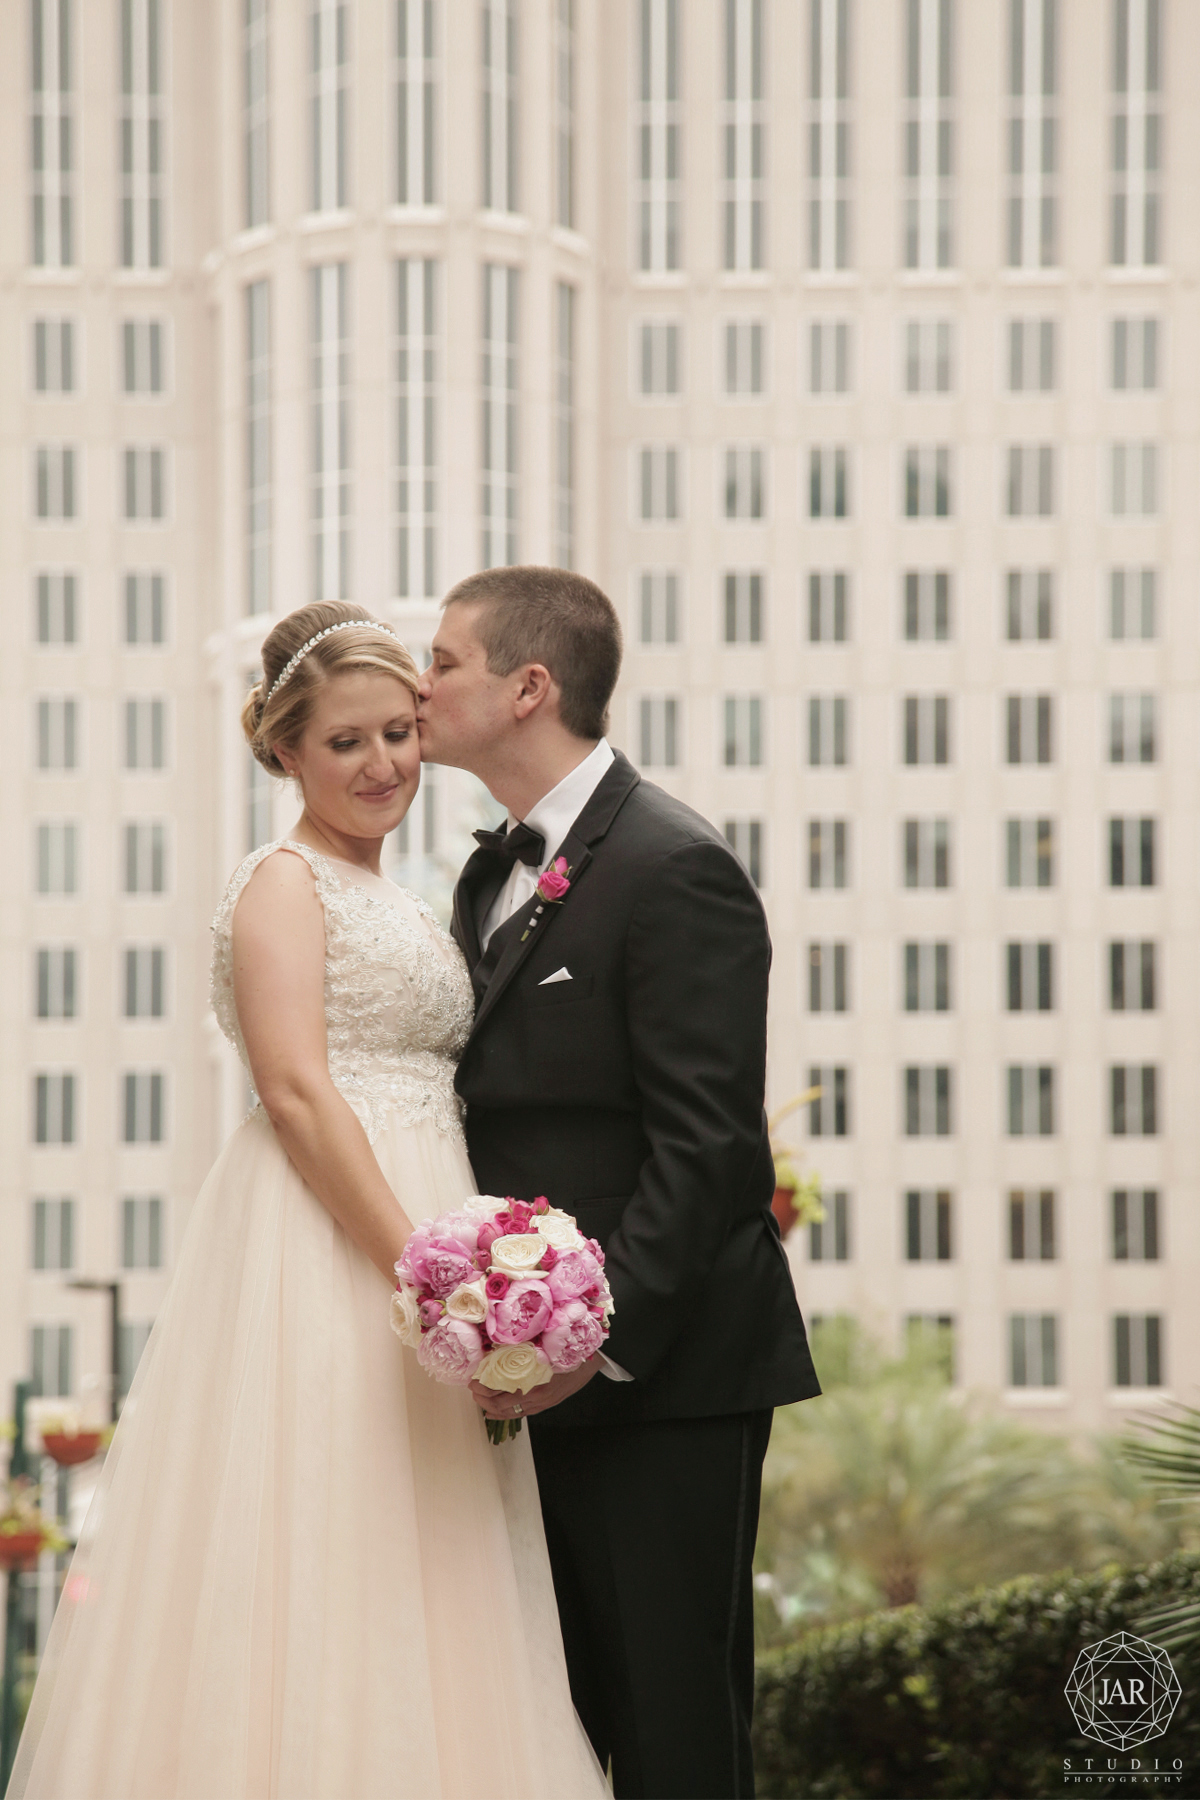 43-romantic-downtown-orlando-jarstudio-wedding-photography.JPG